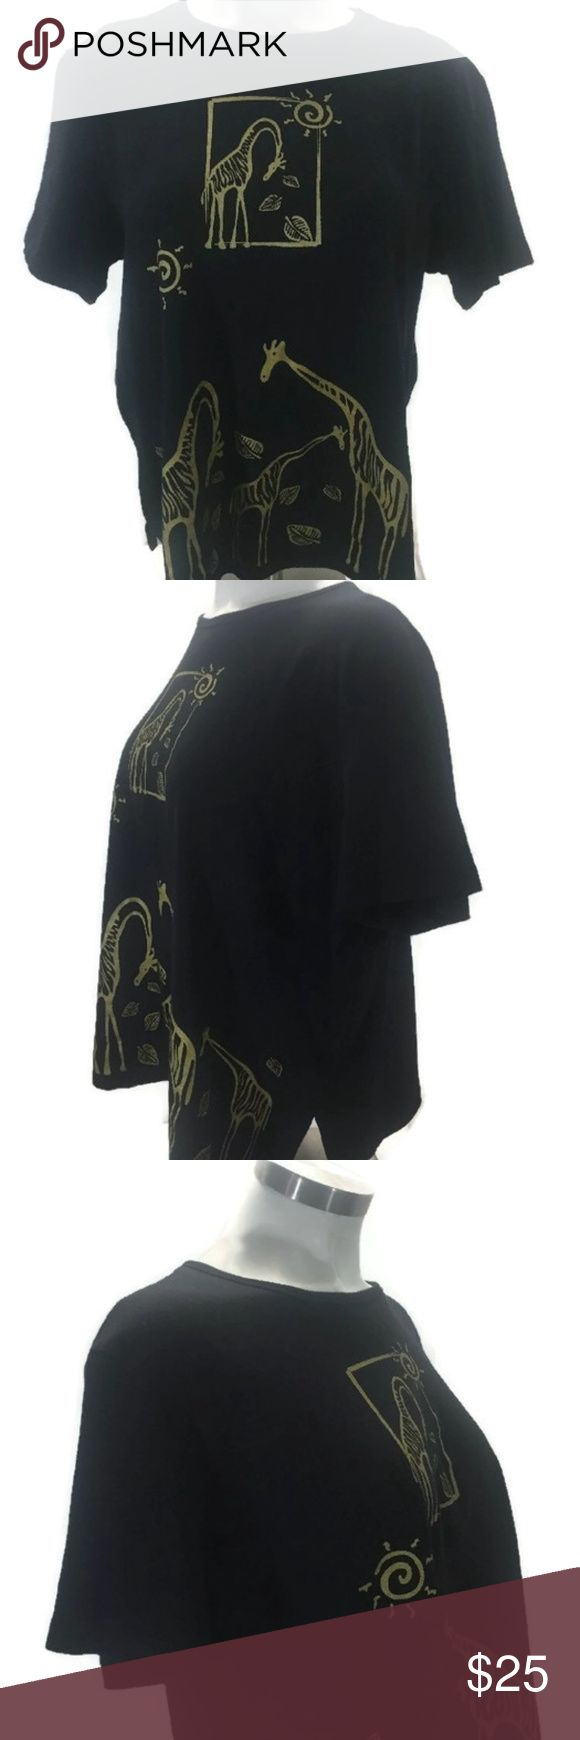 """Gold Giraffes On A Black Knit Short Sleeve Top Kim & Cami Cotton Knit Top Plus Size 3X      Black with Gold Giraffes     Short Sleeve     100% Cotton  Approximate Measurements:      Bust: 56""""     Length: 28""""  Pre-owned with no stains, tears, holes. Kim & Cami Tops Tees - Short Sleeve"""